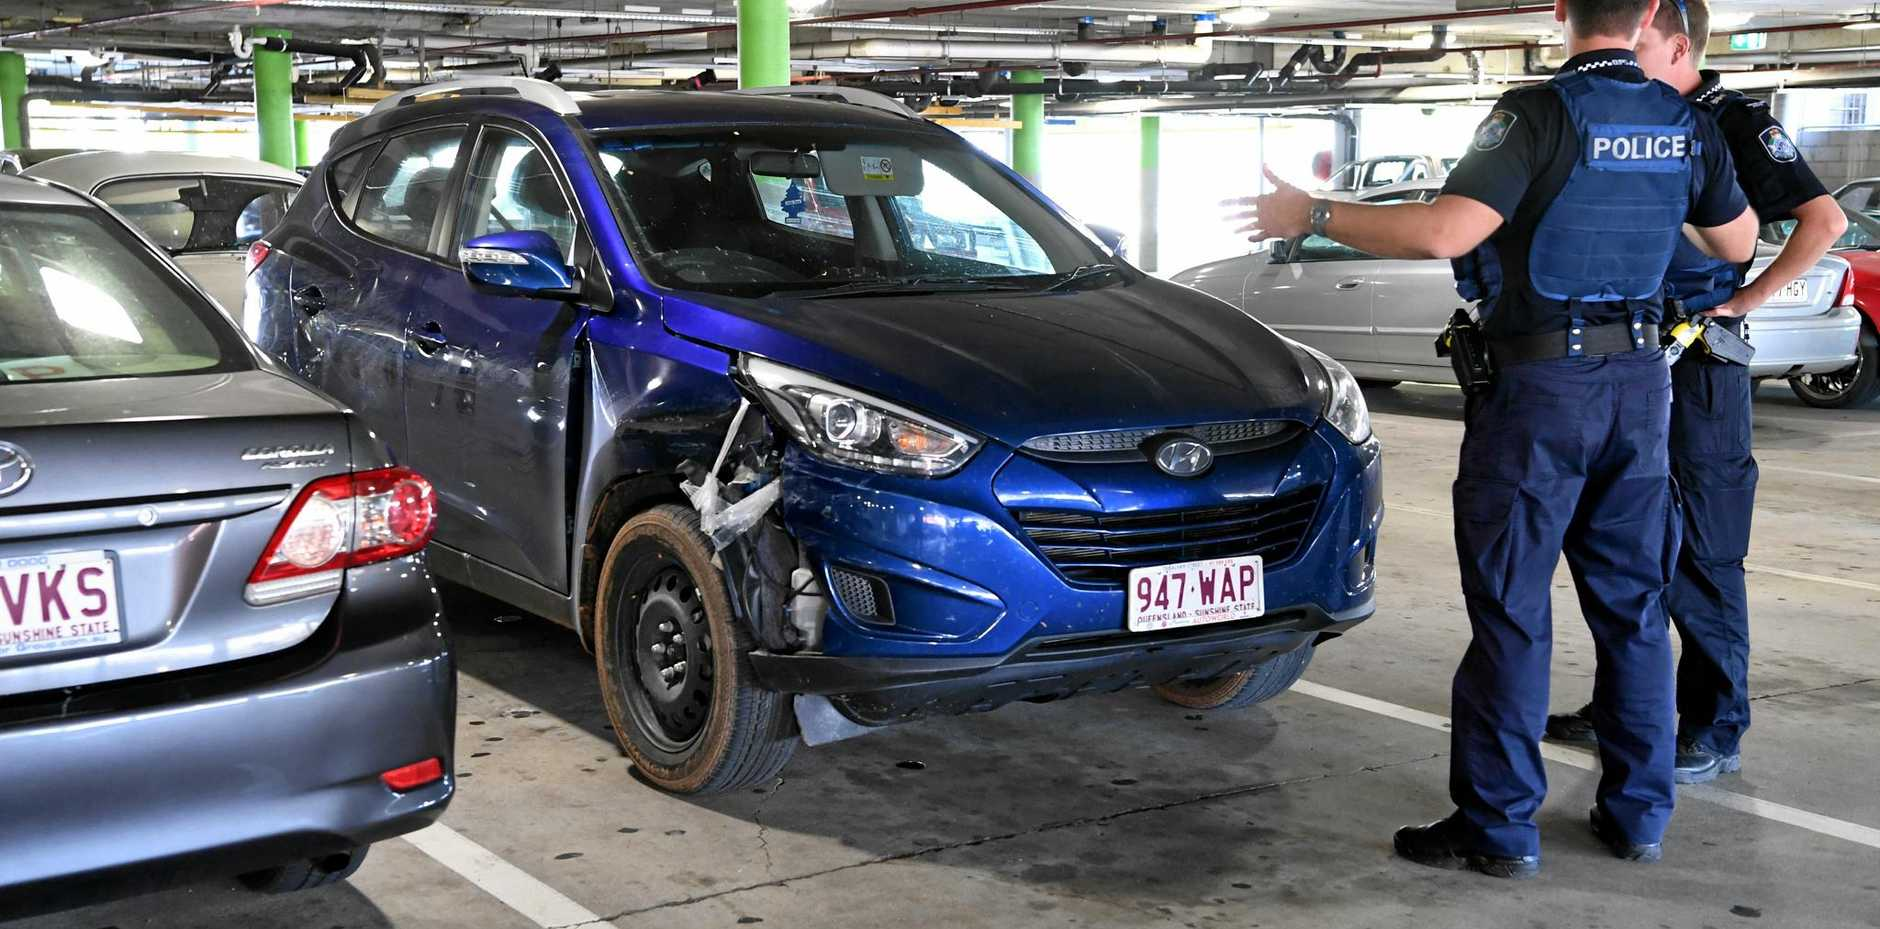 ARREST: A 21-year-old Walkervale man is in custody accused of a spate of car thefts and traffic offences, including the theft of car dumped at Hinkler Central.